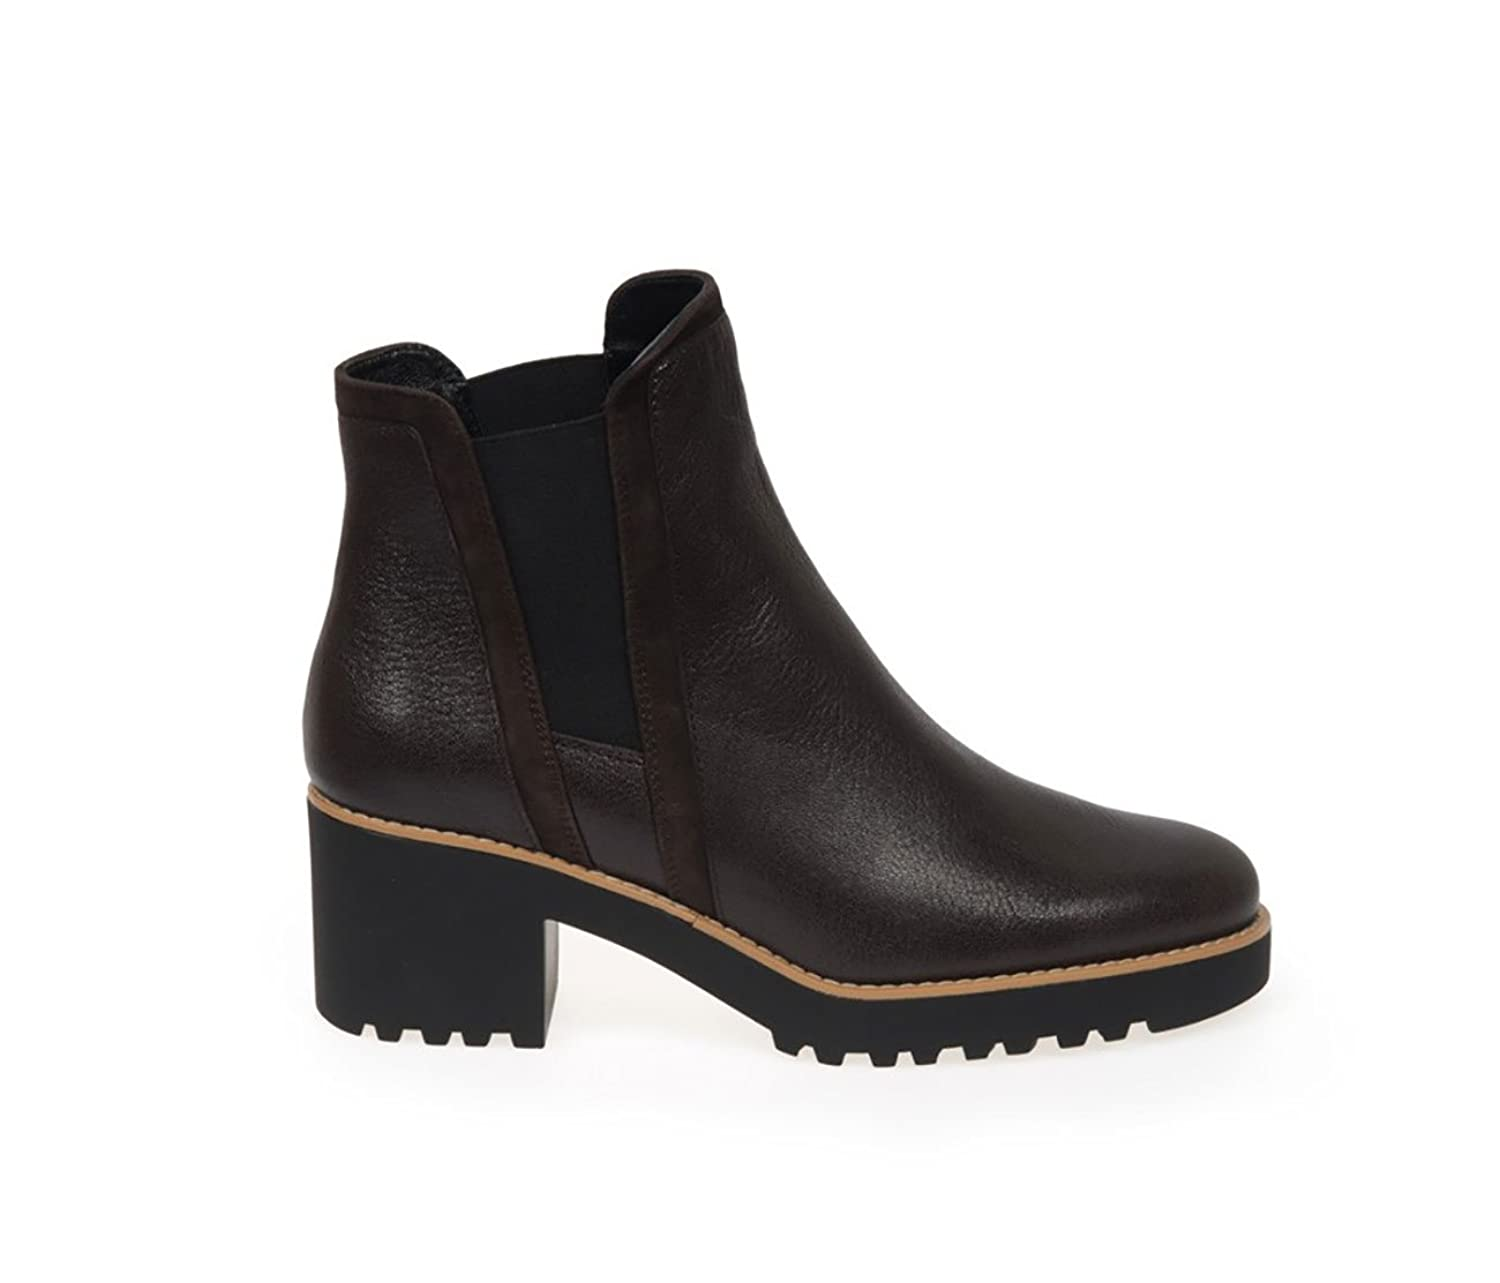 HOGAN ANKLE BOOTS IN BROWN LEATHER WITH ZIP, Womens.